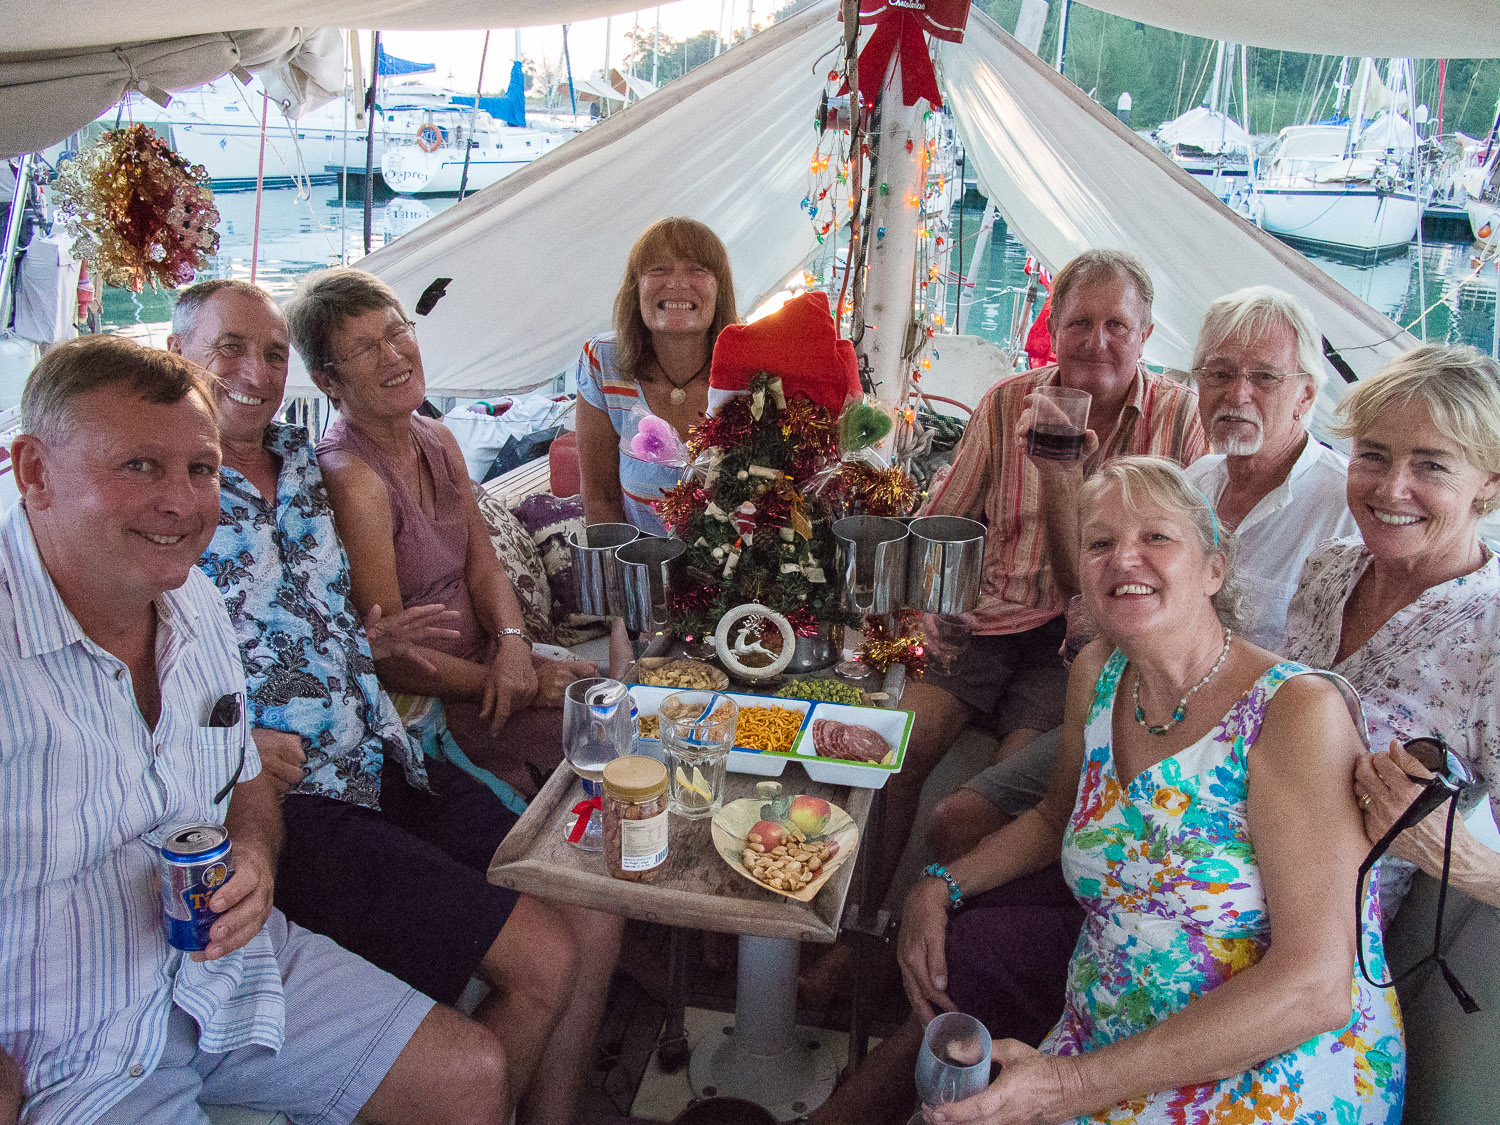 Antony, Tony, Pat, Liz, Terry, Brian, Debs and Div aboard Esper for Christmas drinks